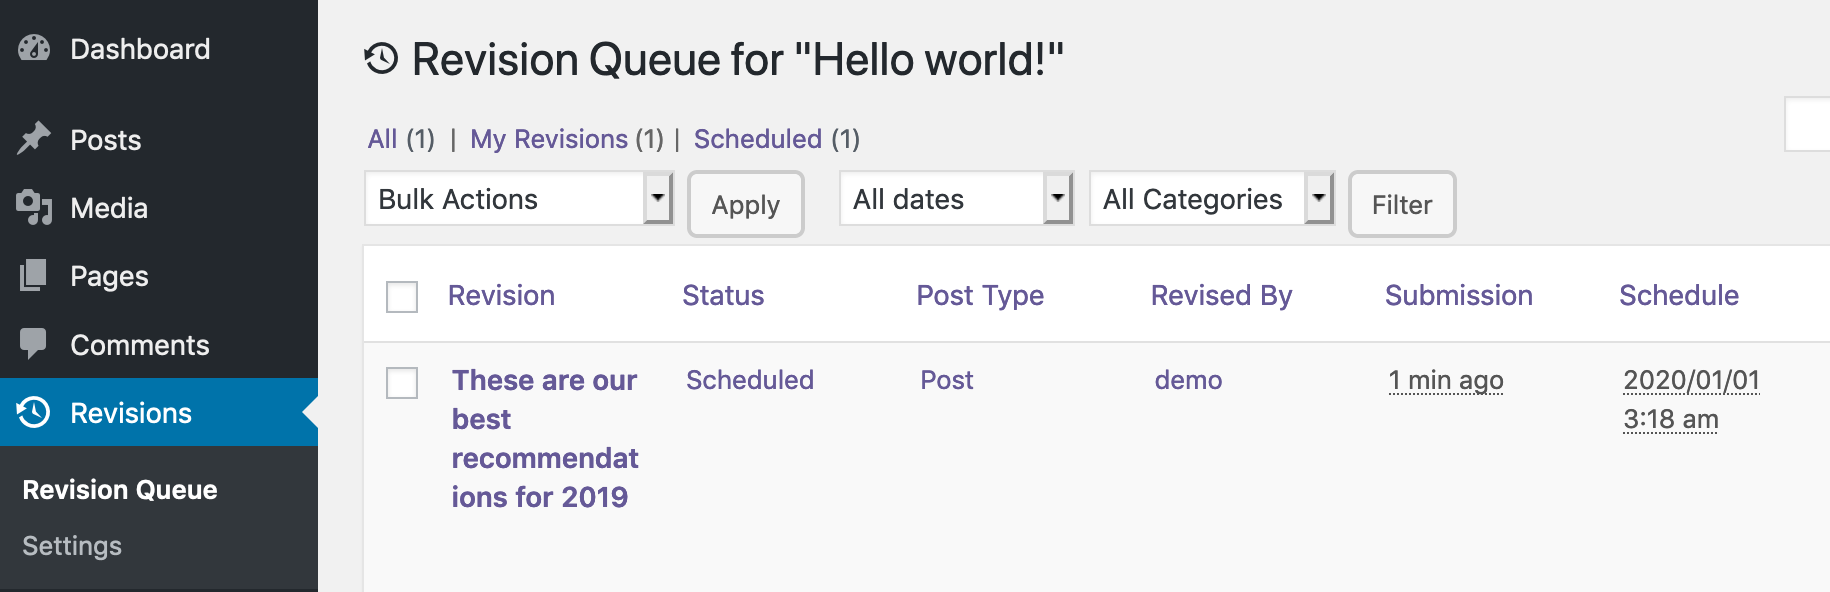 View Revision Queue for hello world